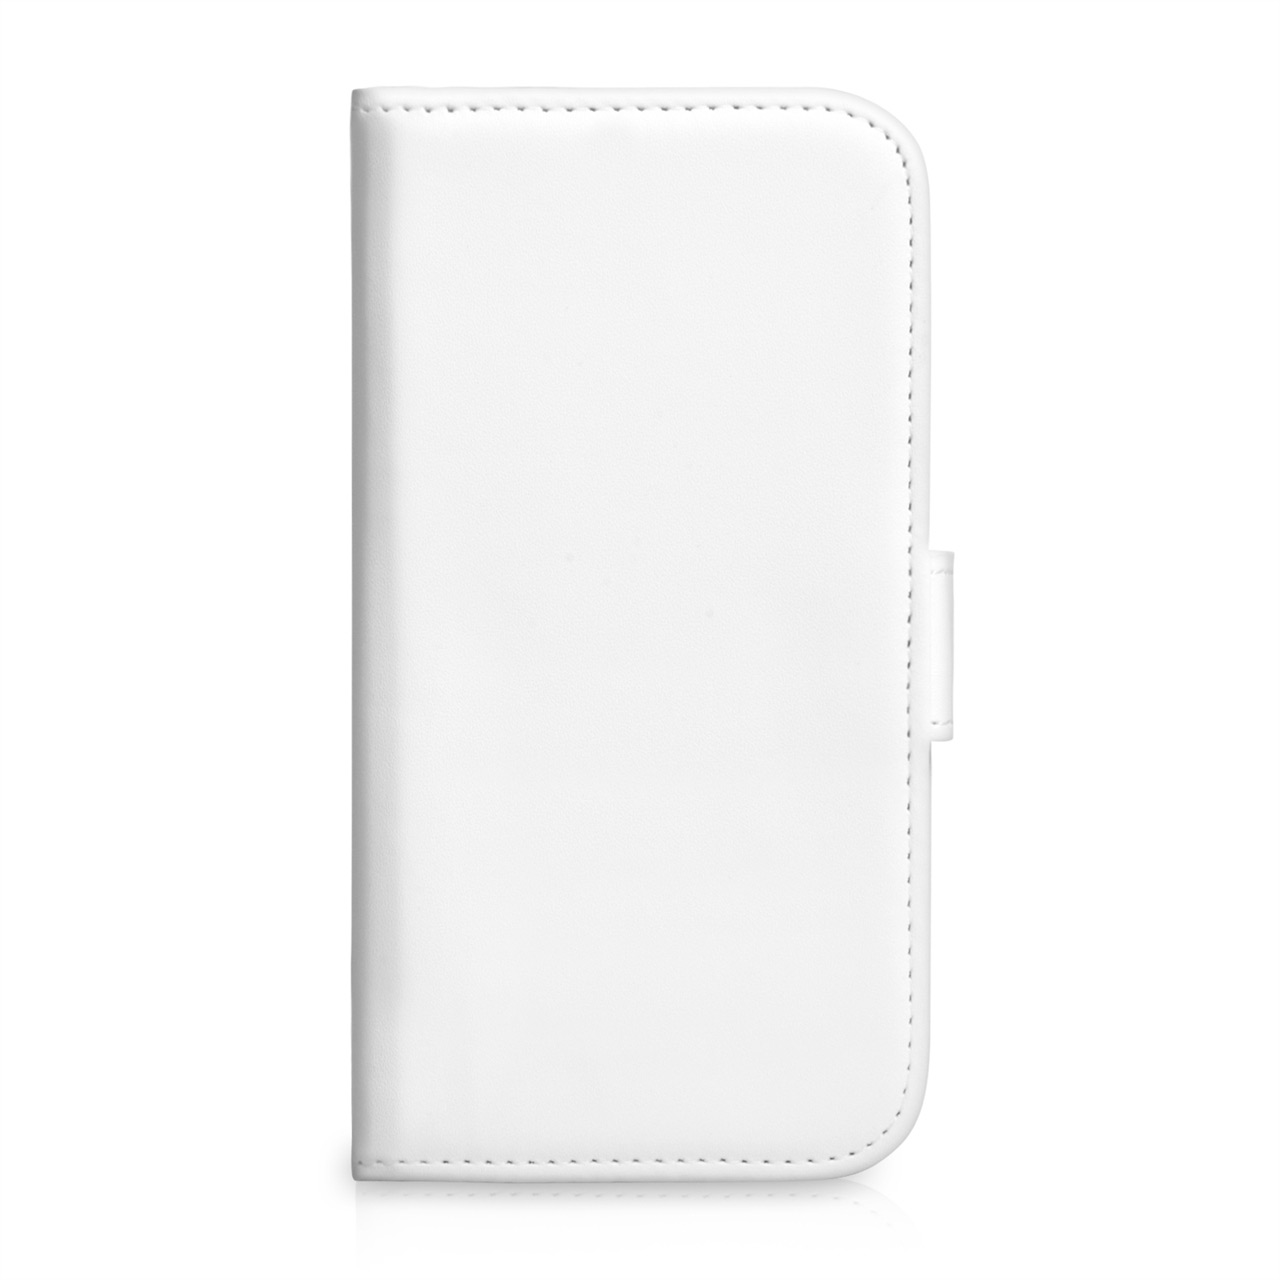 YouSave Accessories Nokia Lumia 625 Leather Effect Wallet Case - White